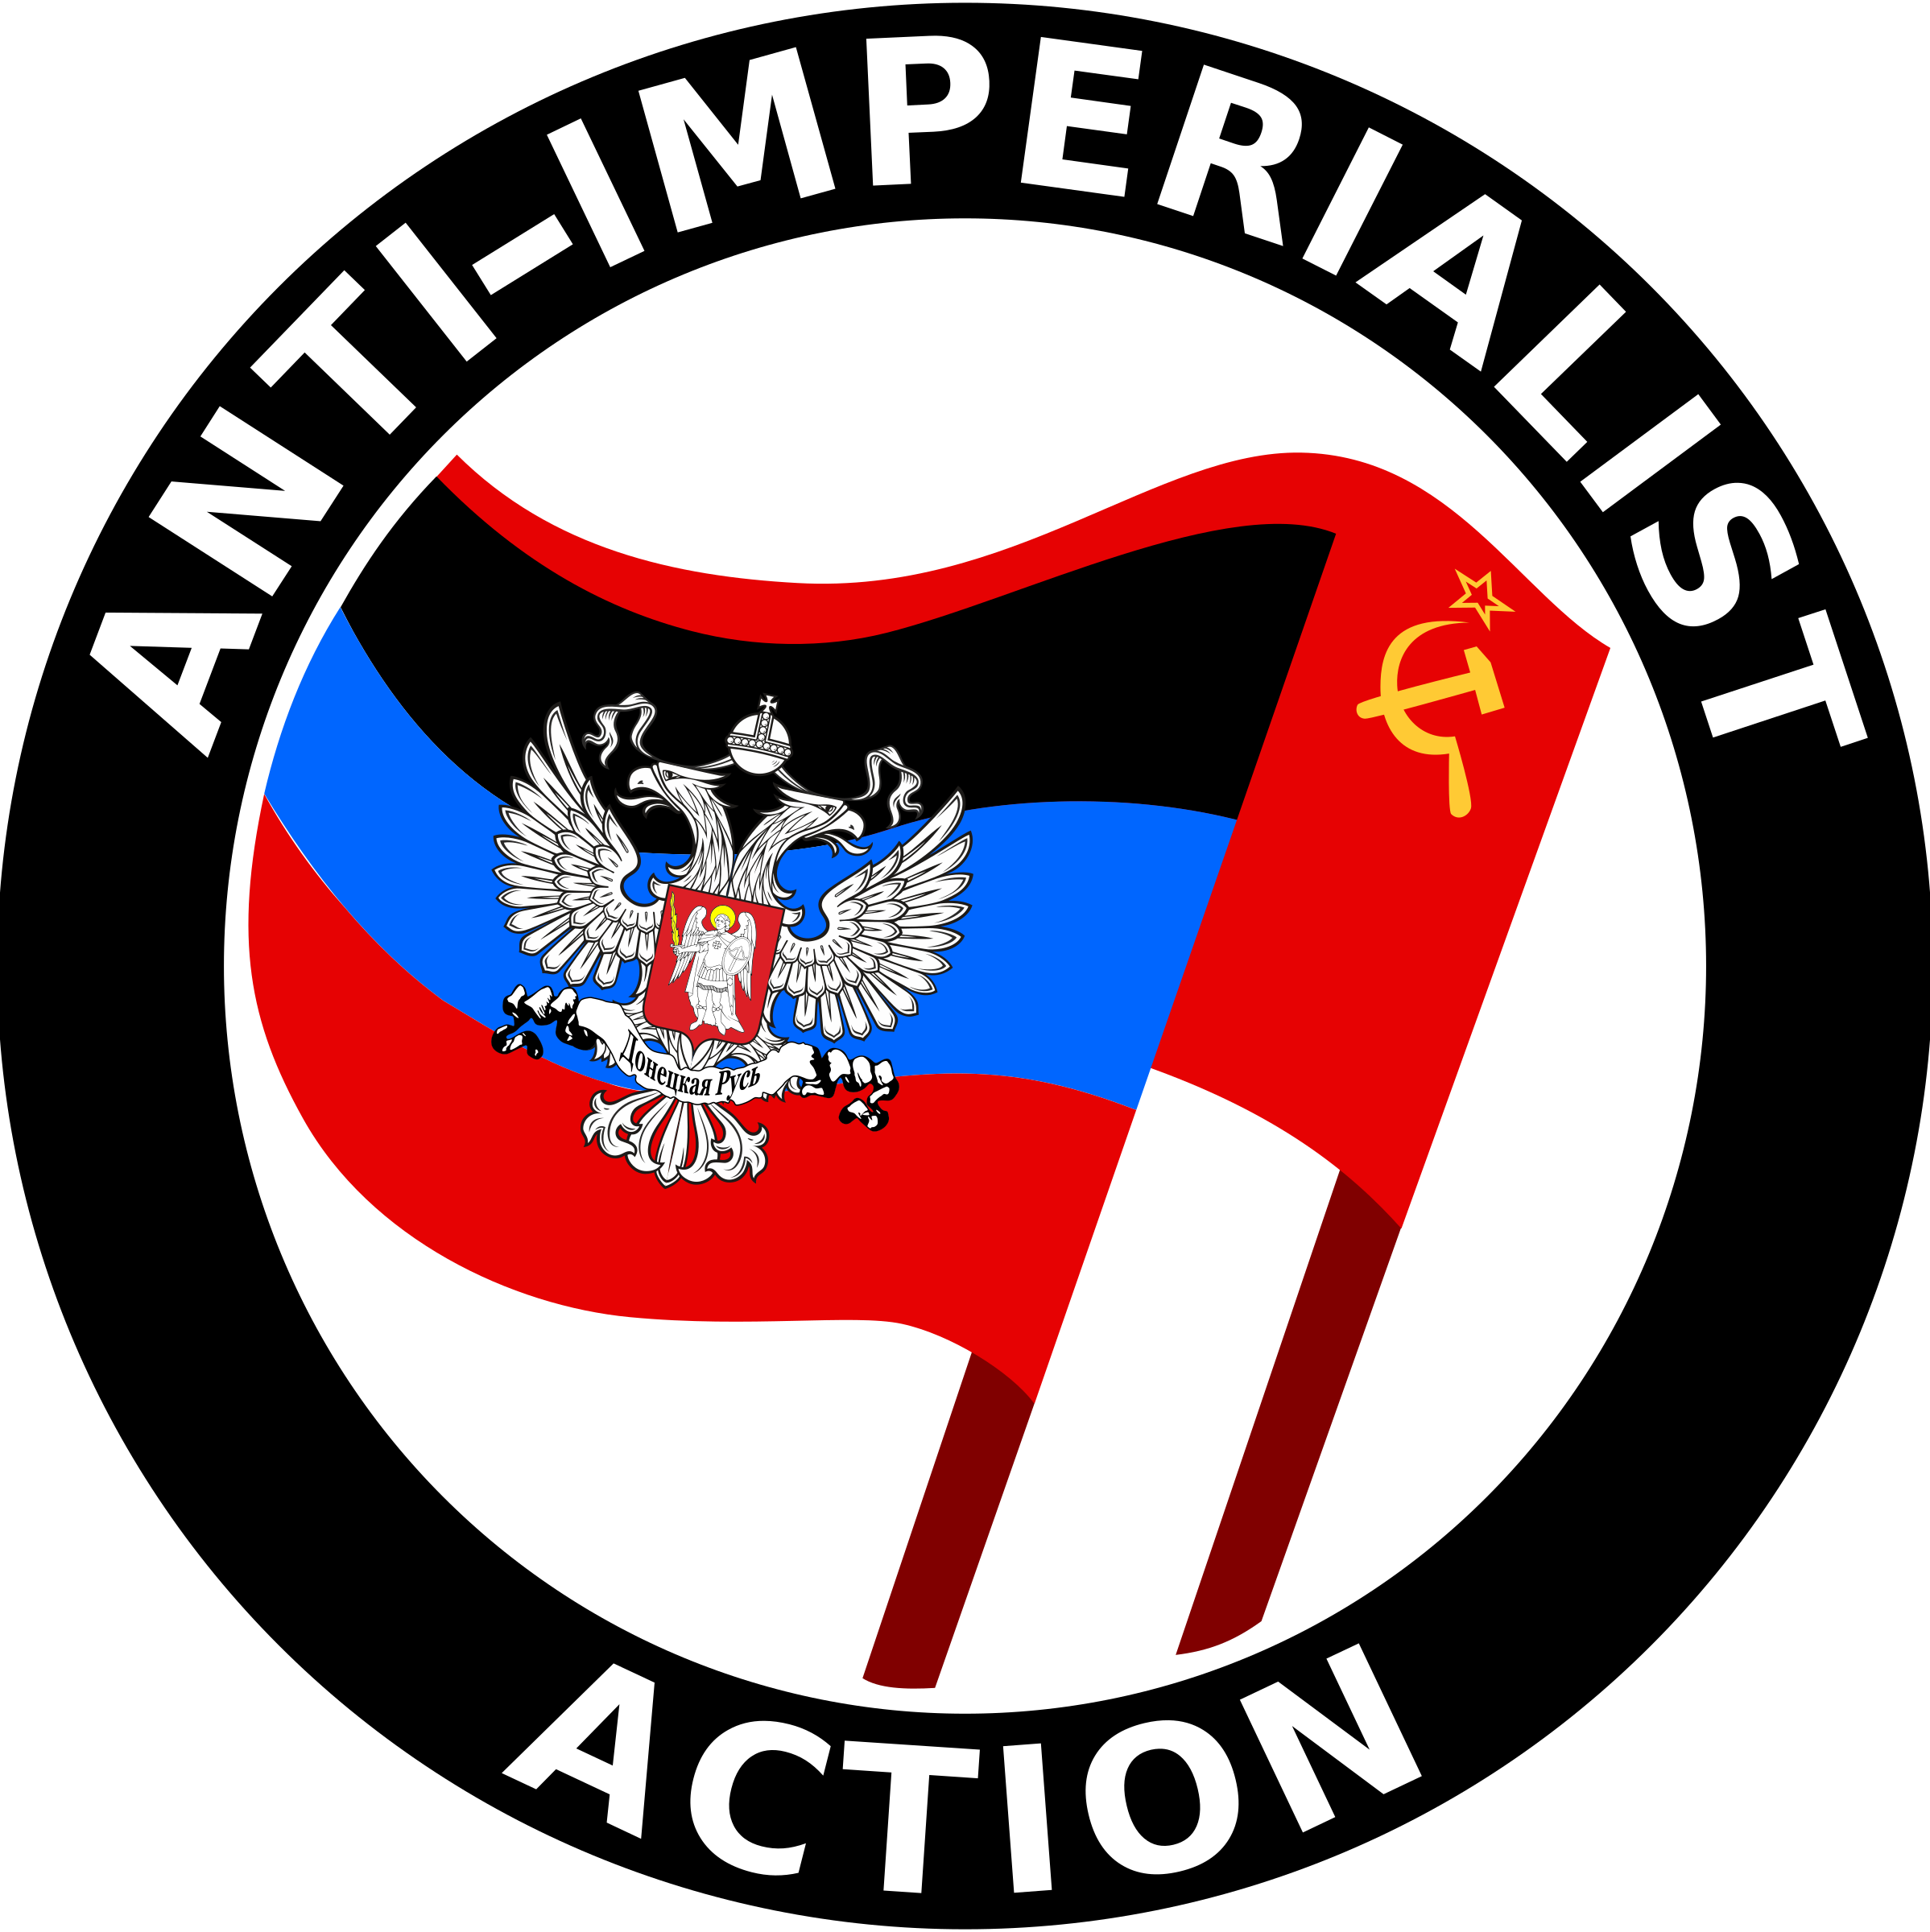 Anti-Imperialist Action Donetzk by worker